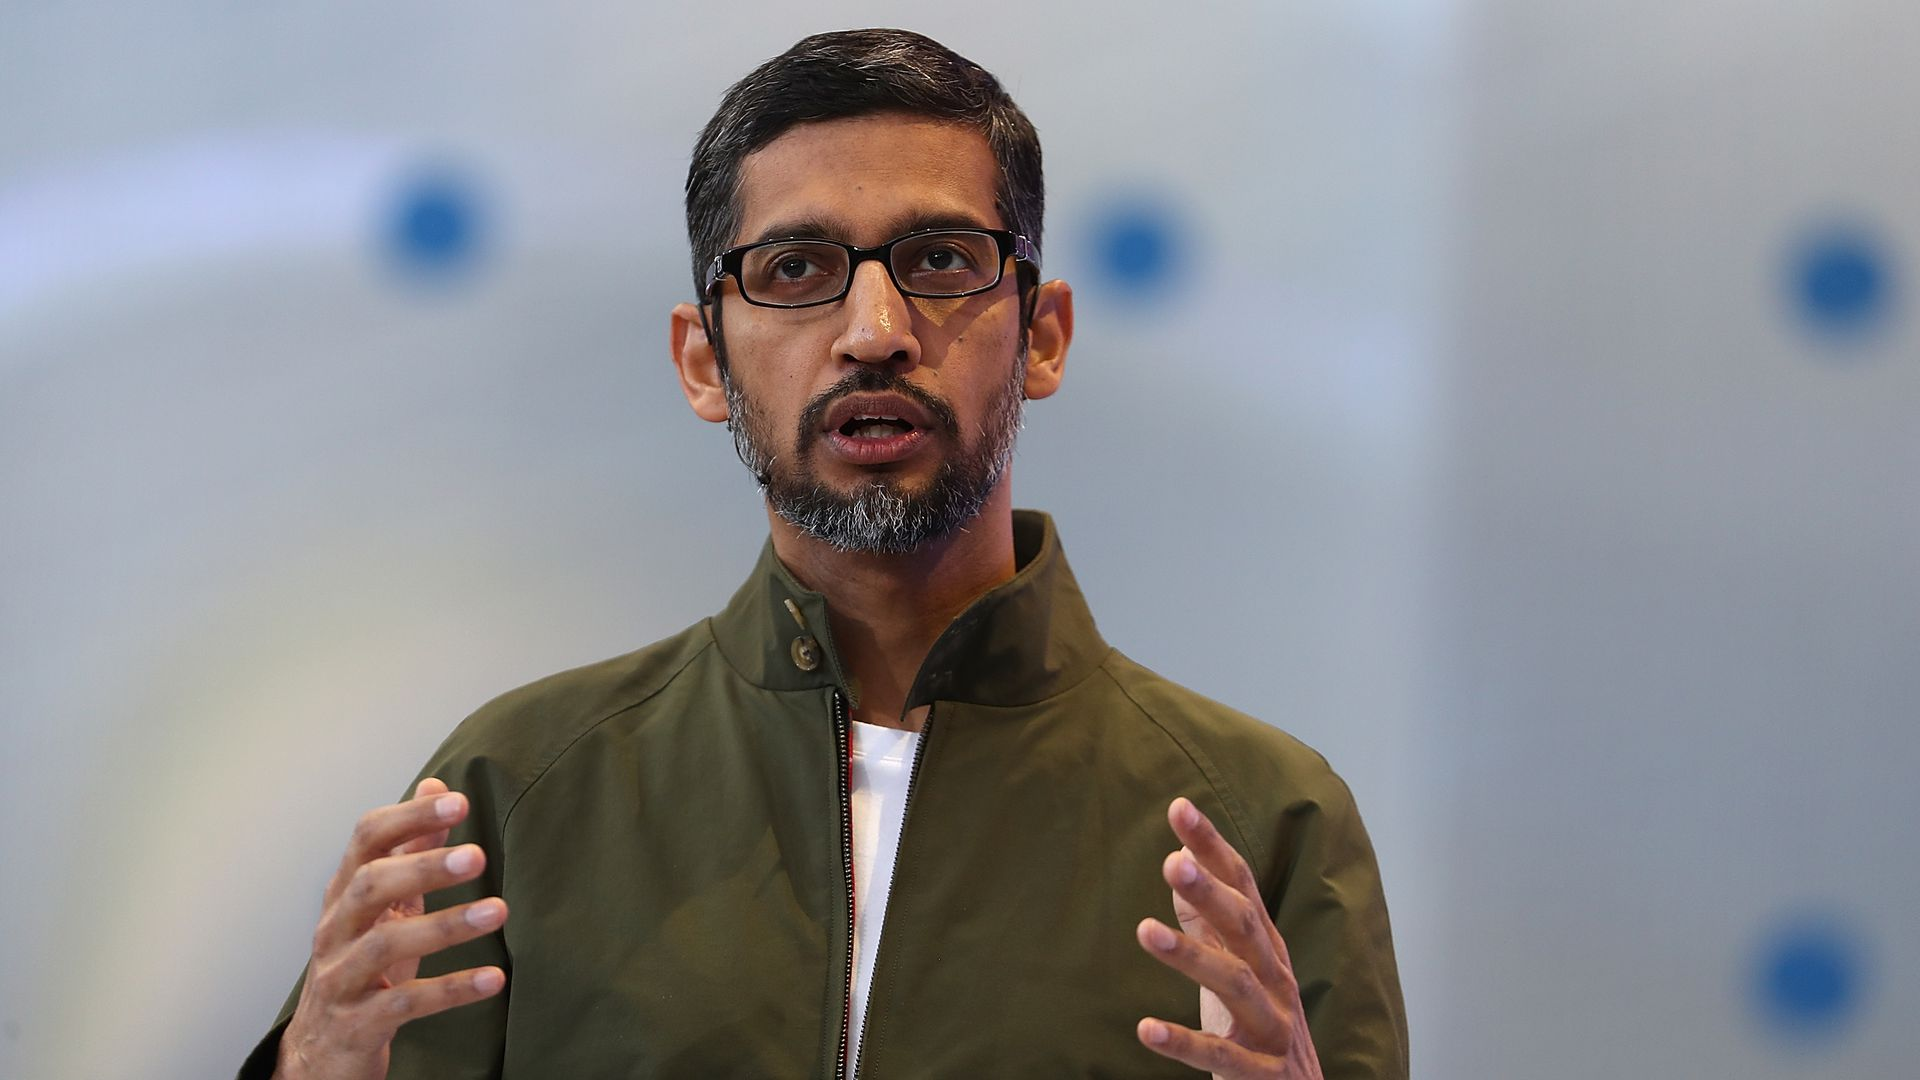 Google CEO Sundar Pichai, speaking at the company's I/O developer conference